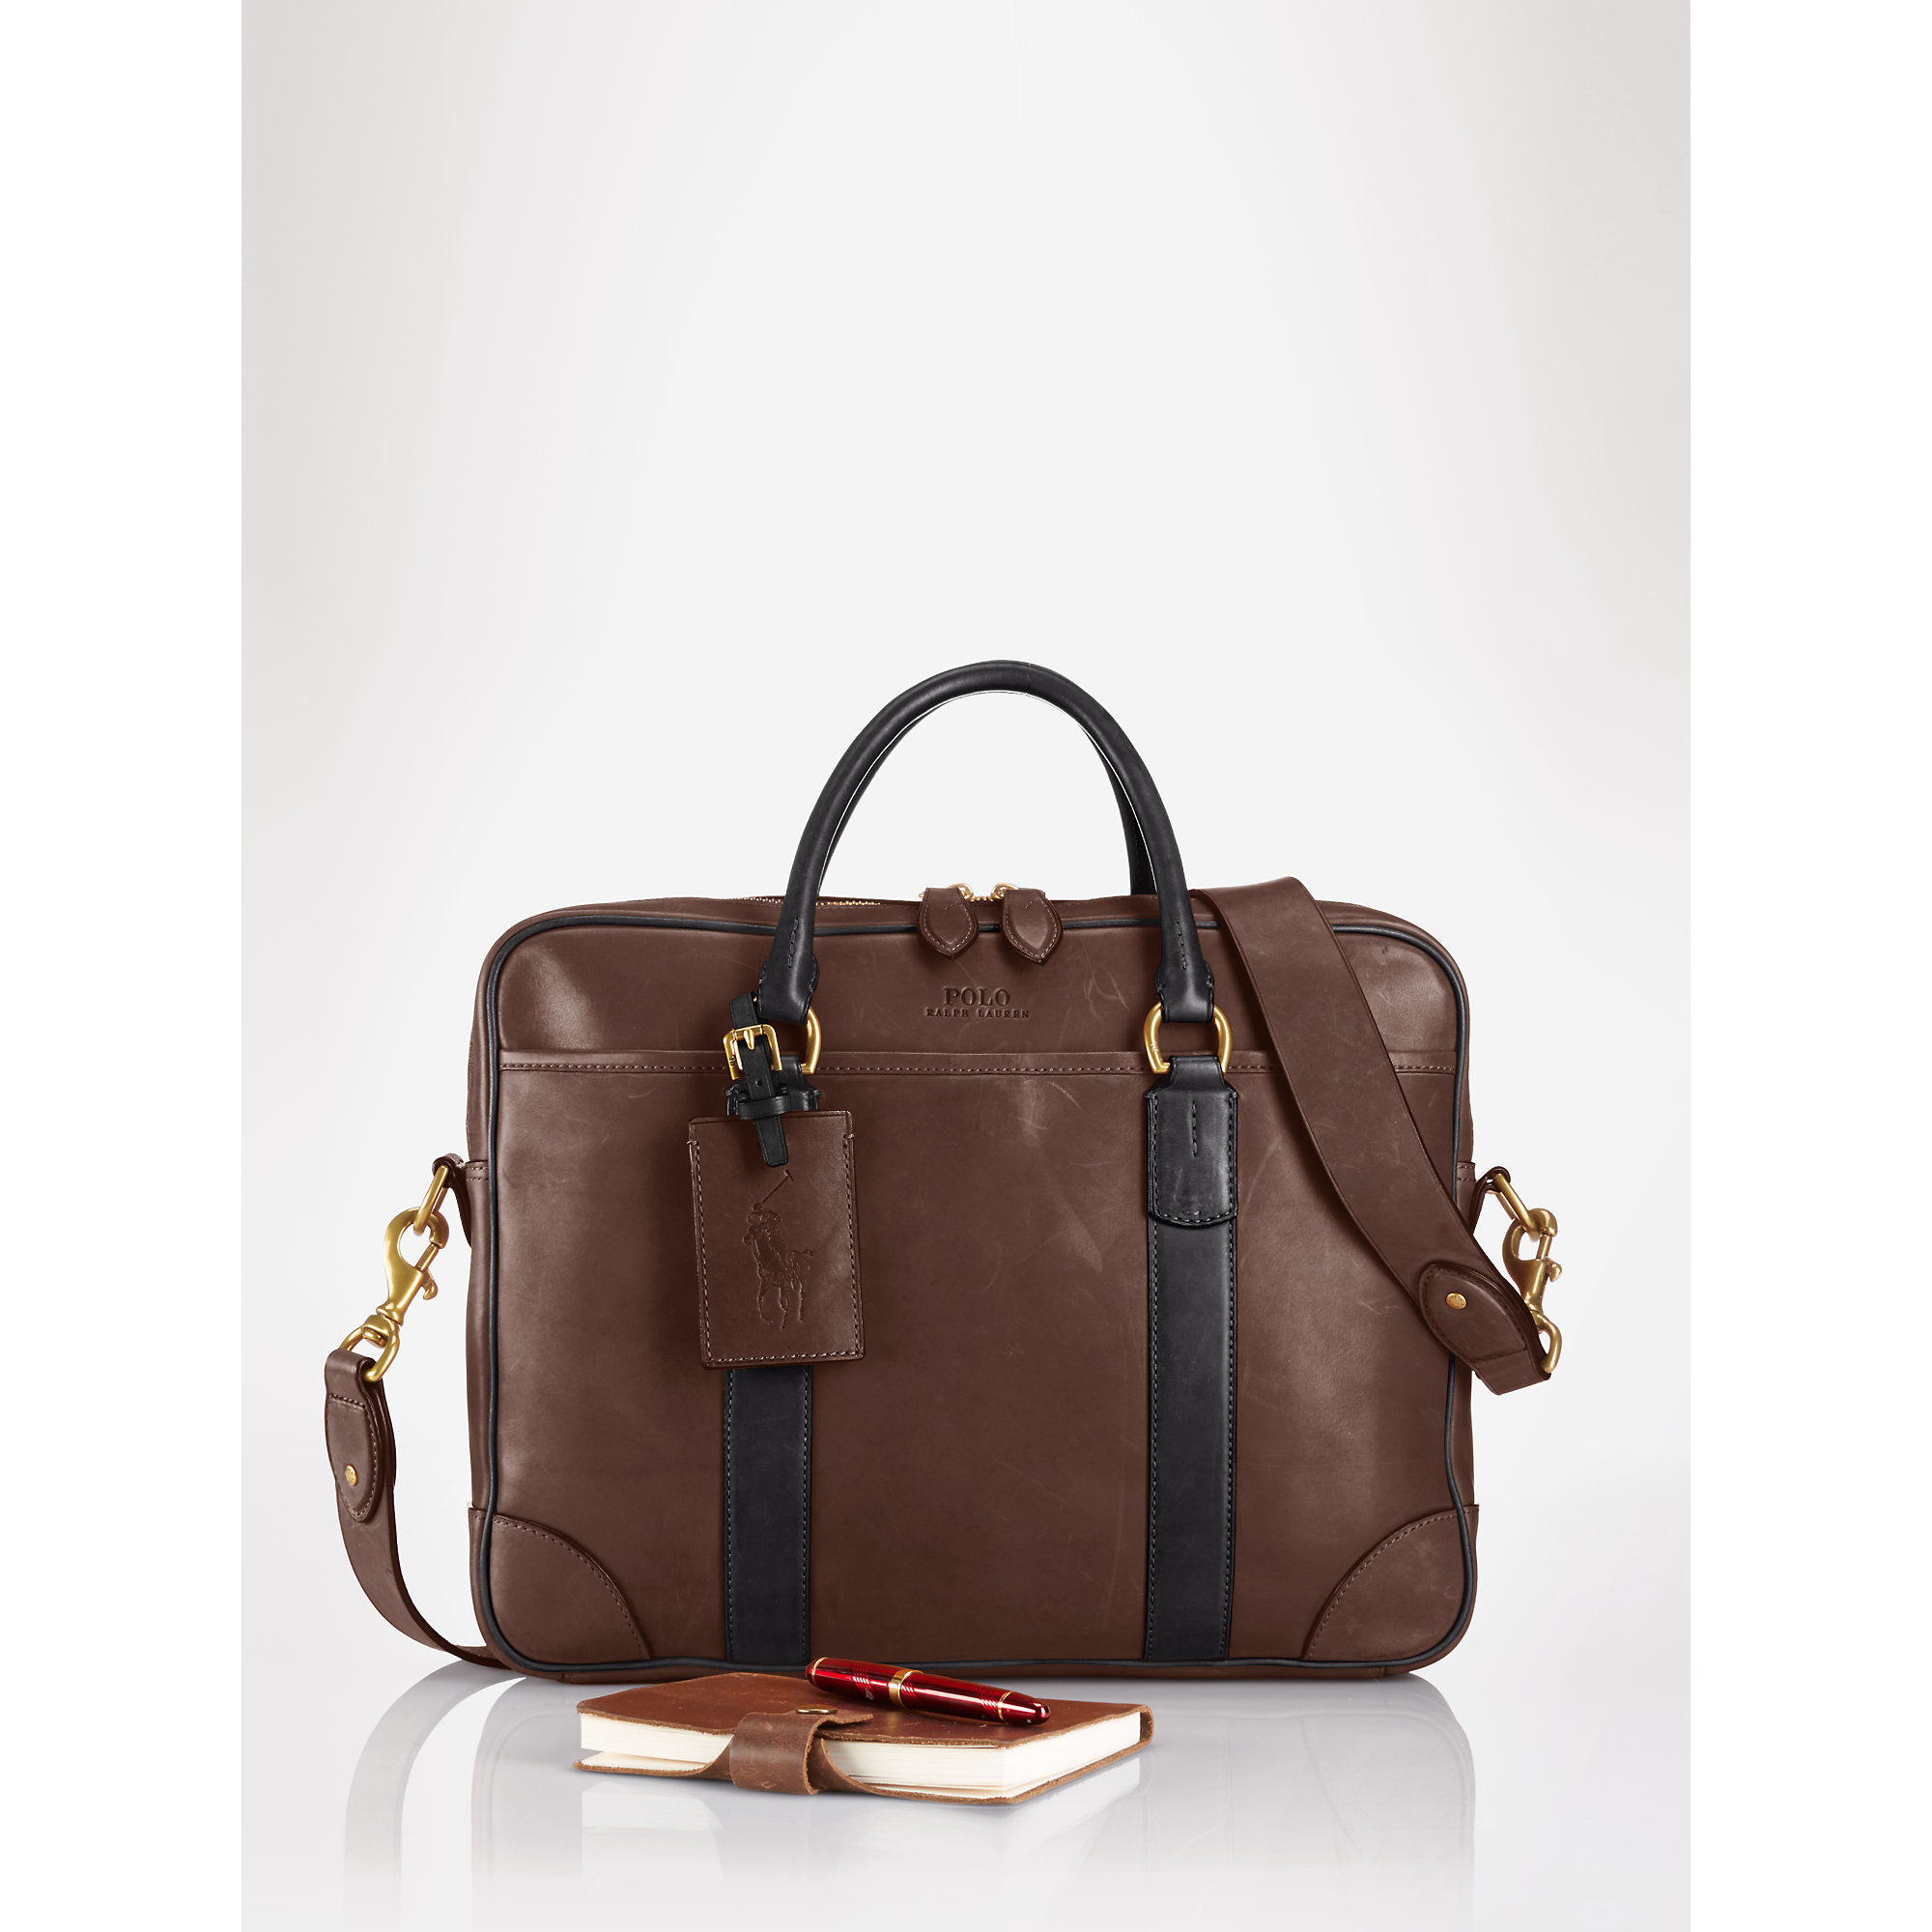 03051393f6 Lyst - Polo Ralph Lauren Leather Commuter Bag in Brown for Men